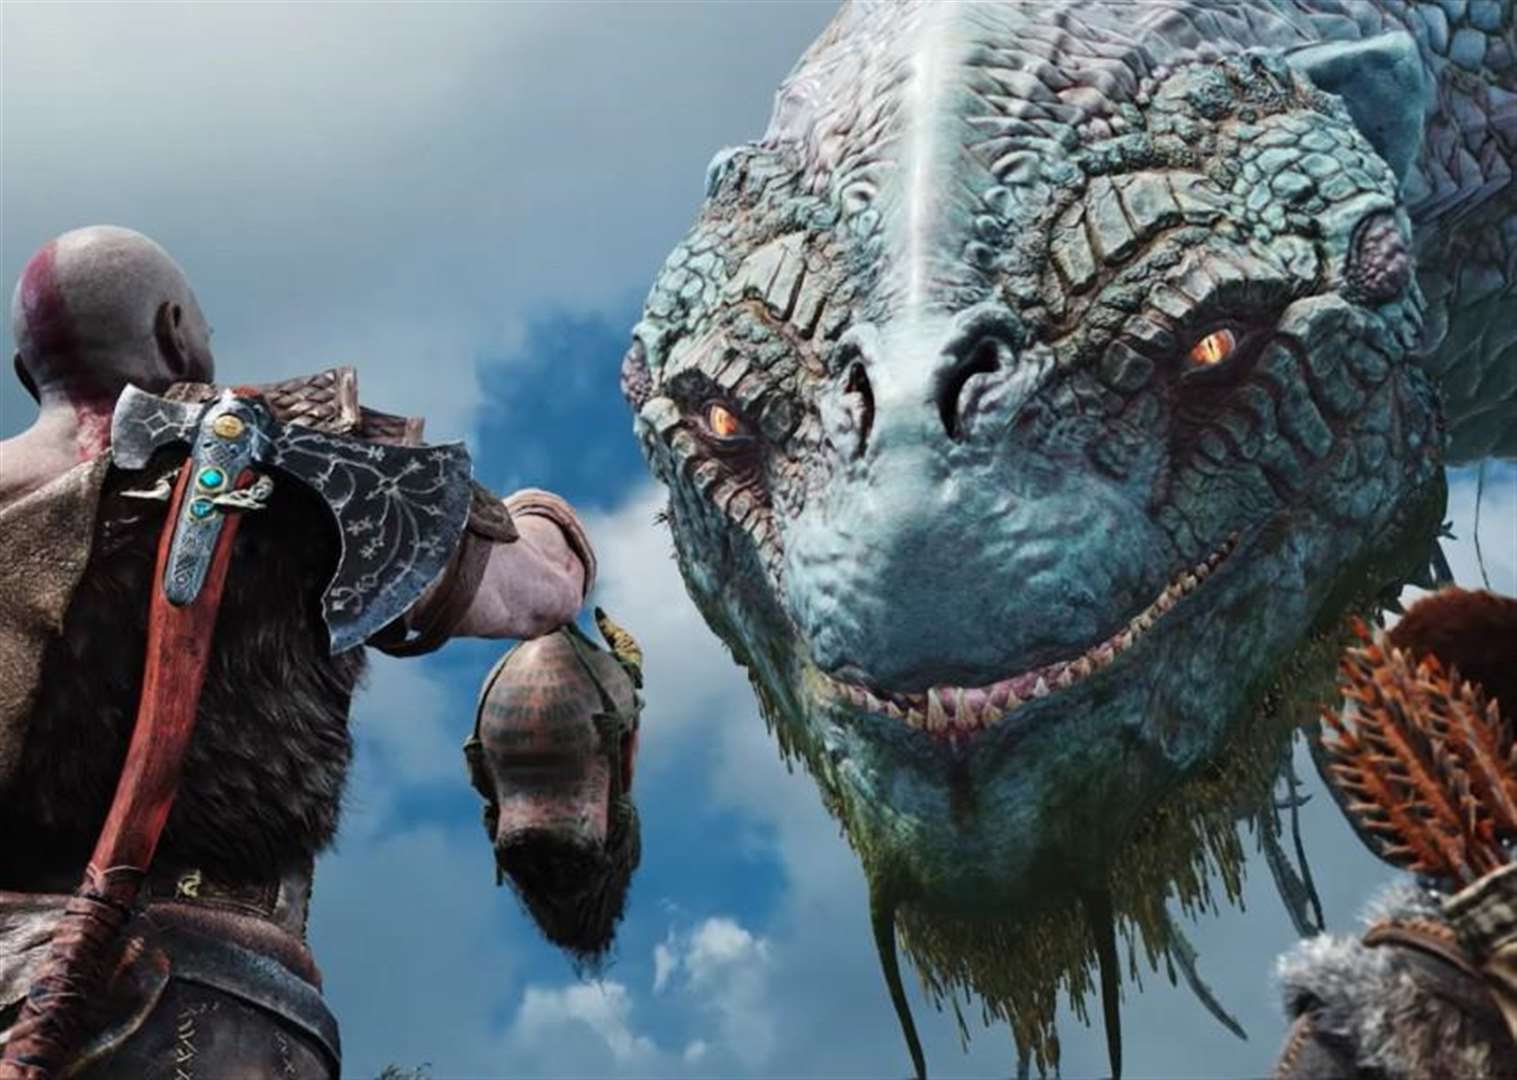 Console Corner: God of War review